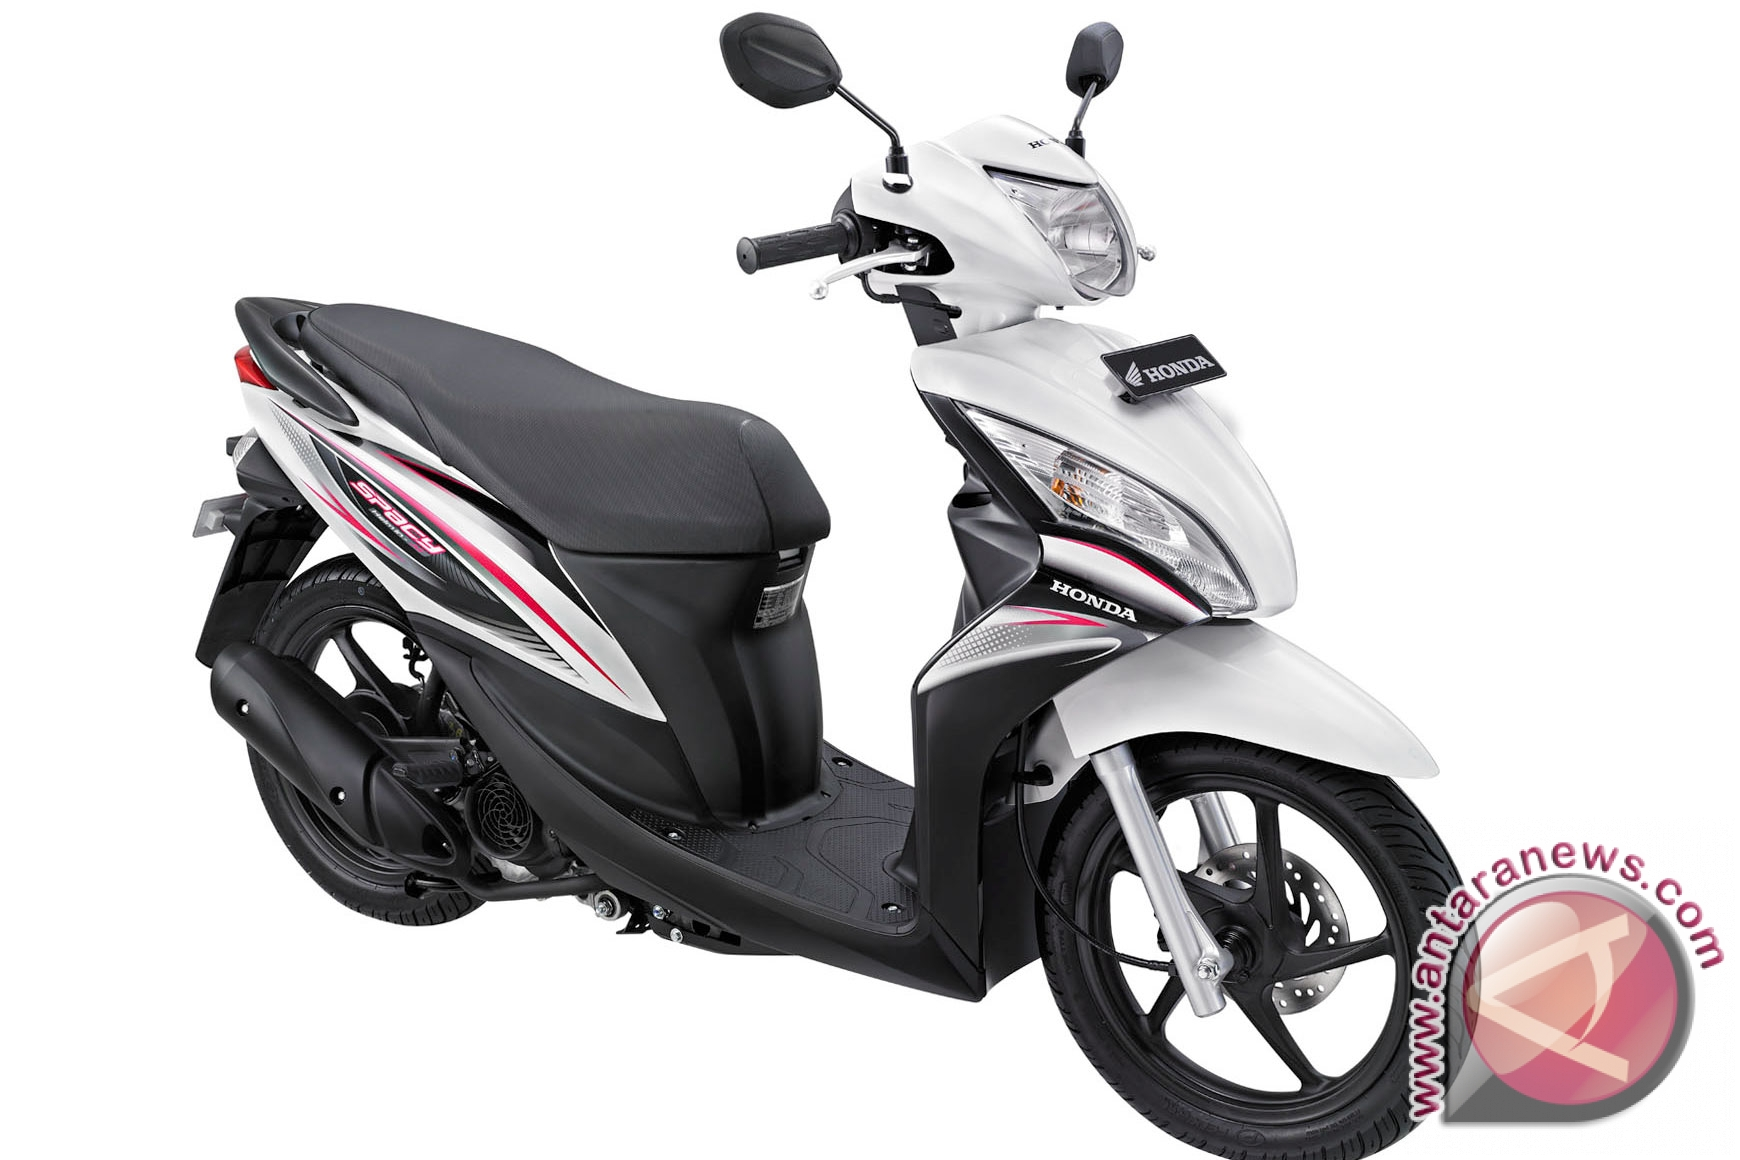 Honda Spacy Helm In Pgm Fi Terbaru 2013 Spesifikasi Motor Honda Spacy